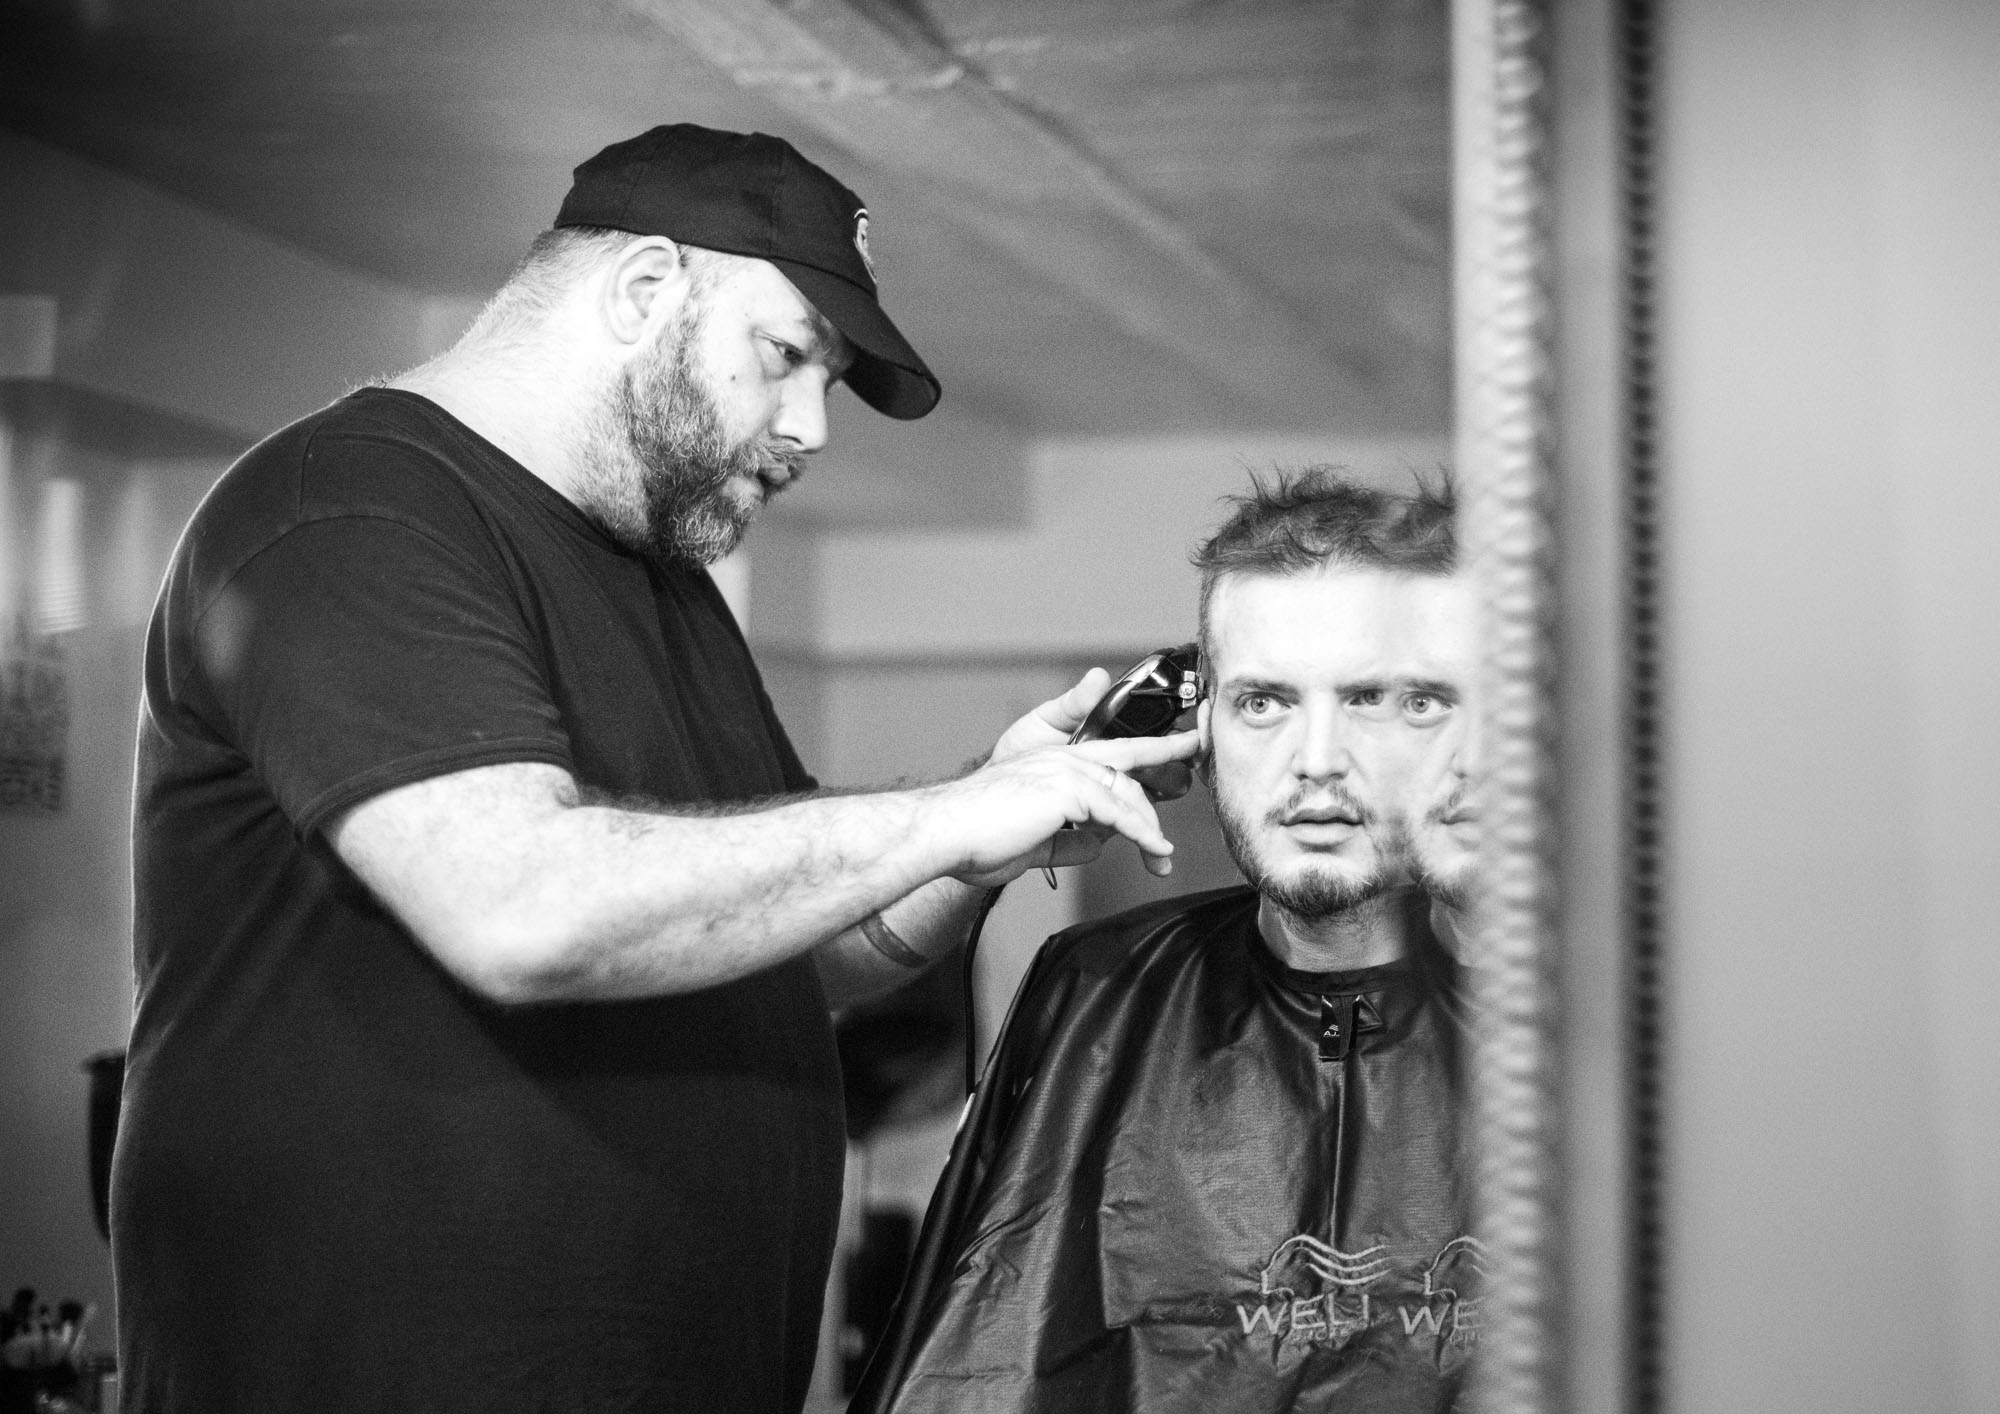 Wade is a freelance hairstylist. Once in a while, he sits Stephen down in the chair in his home salon and treats him to a haircut, shave and facial mask.